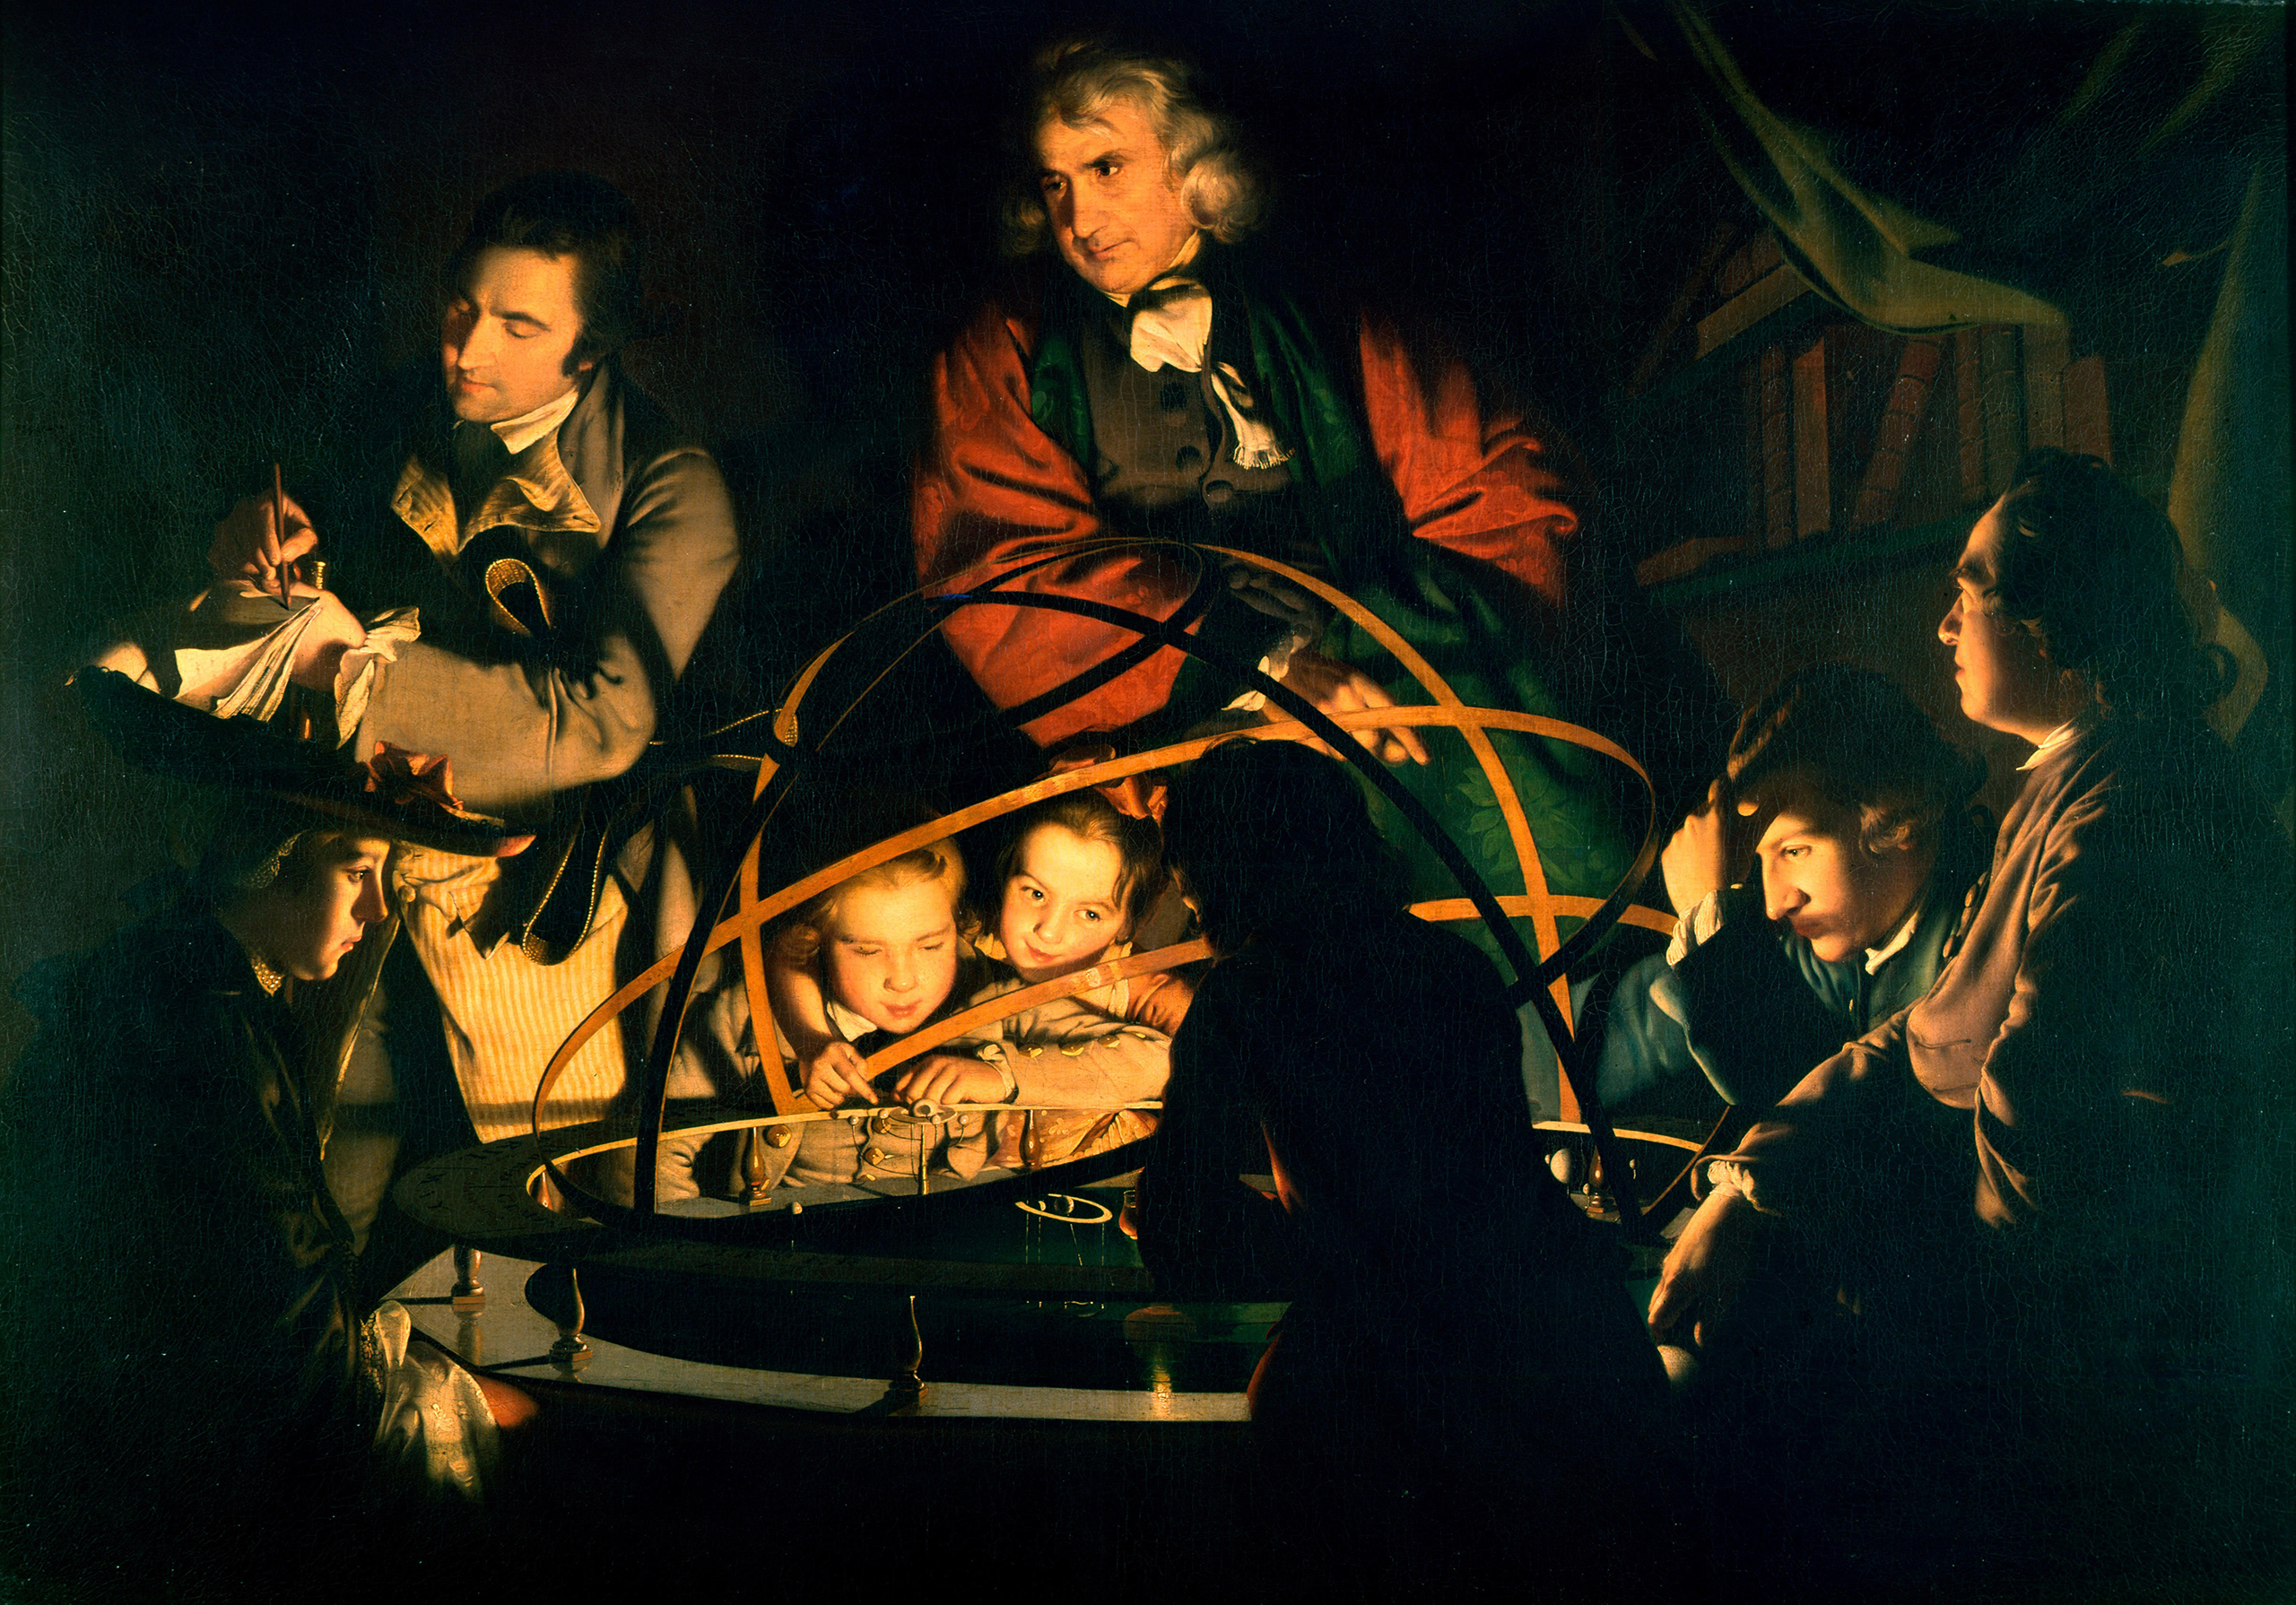 The Enlightenment romanticized the pursuit of scientific knowledge (as depicted in this 1766 Joseph Wright painting of a philosopher giving a lecture), which was disruptive for those accustomed to tradition and religion.